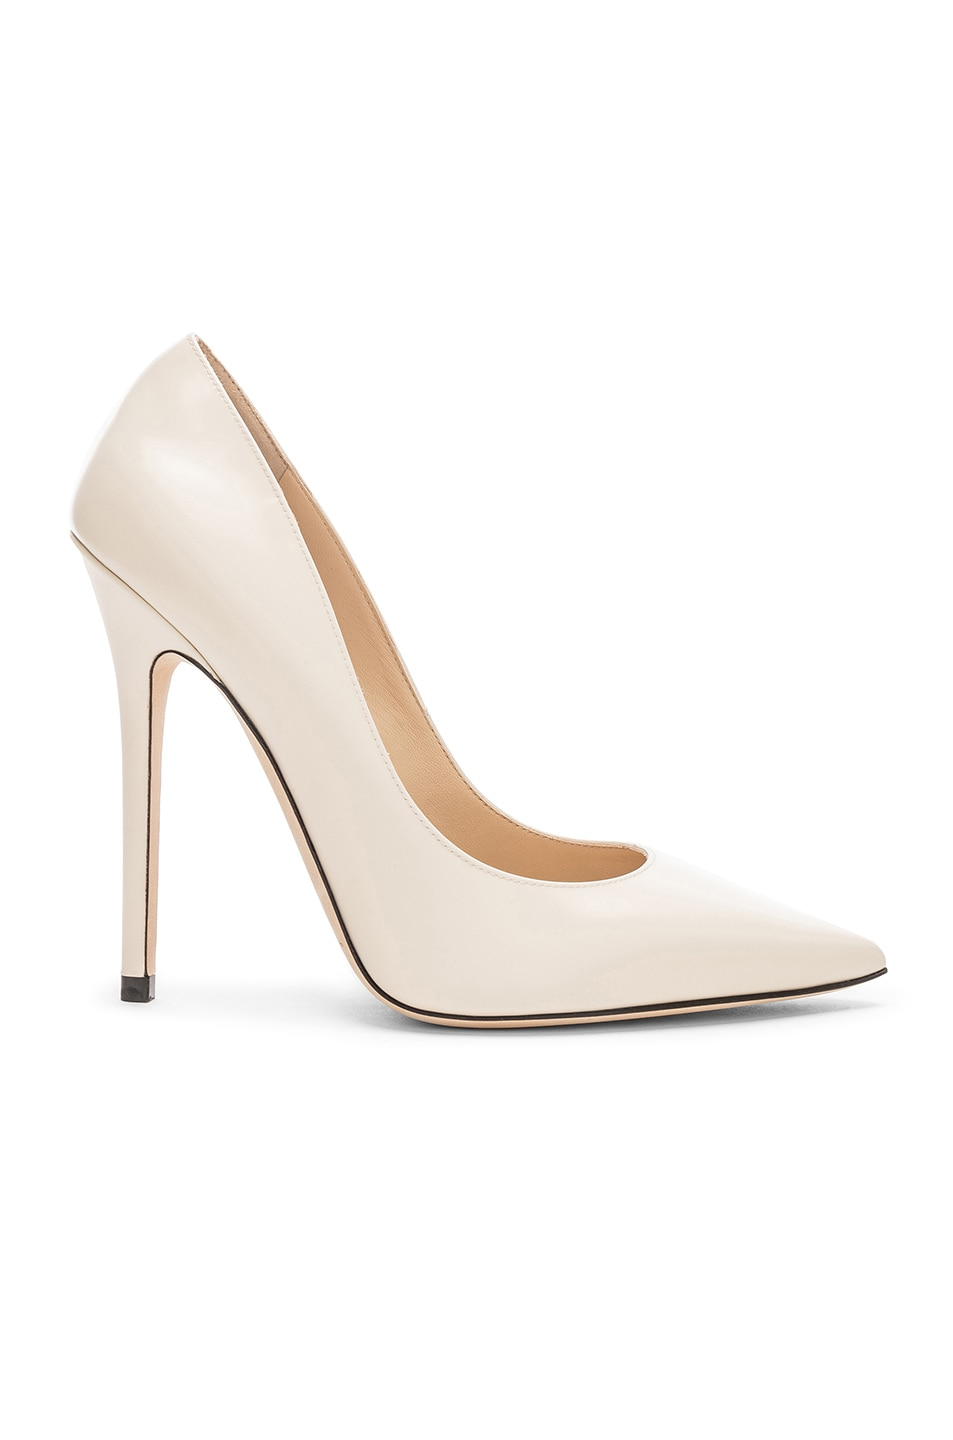 Image 1 of Jimmy Choo Anouk 120 Leather Pump in Linen